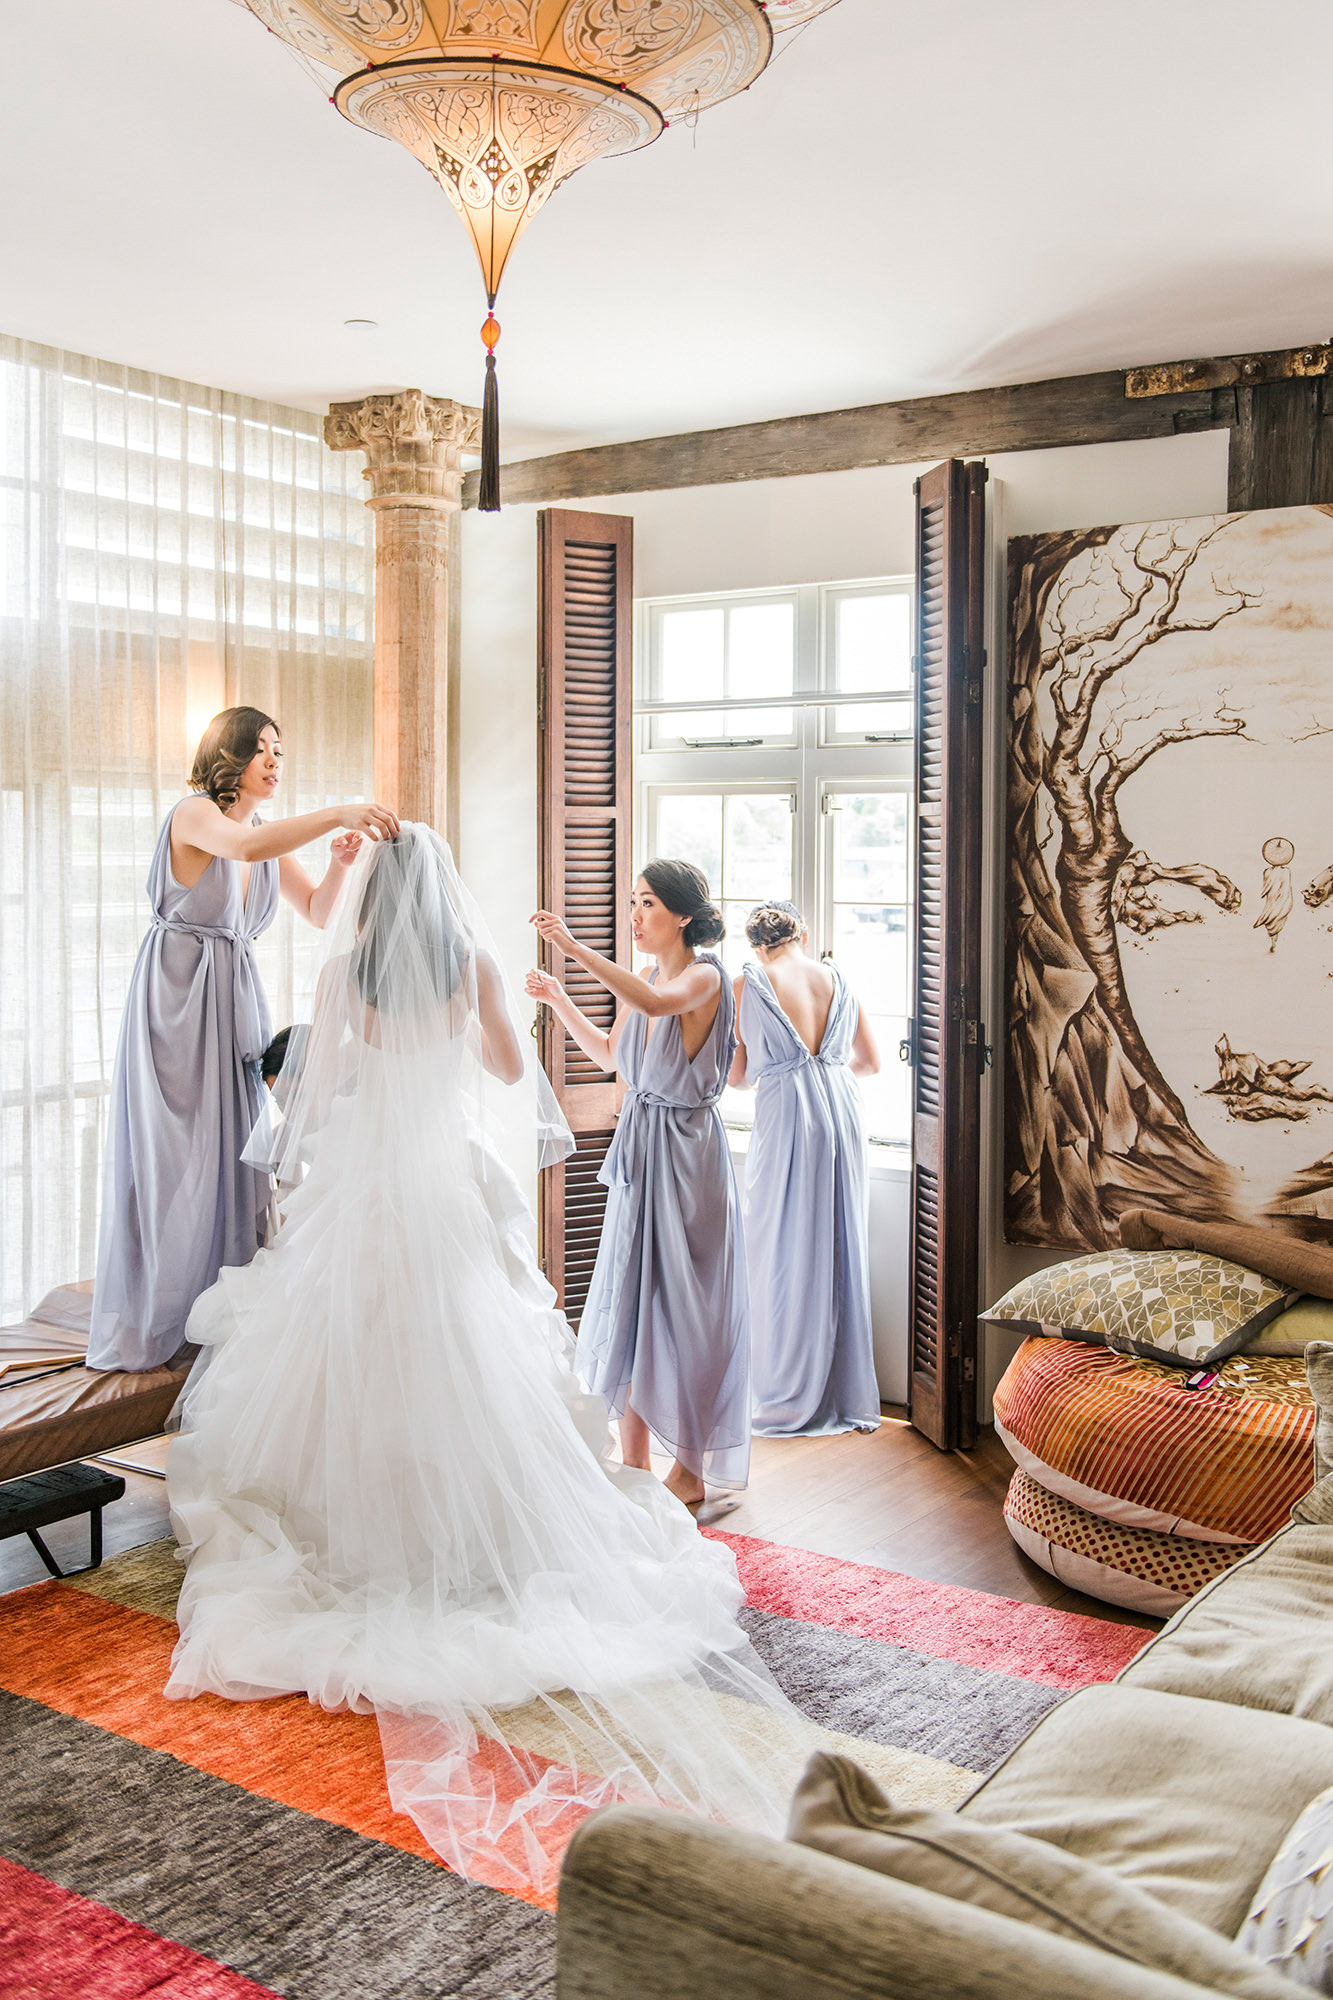 Bridesmaids helping bride get married in Oriental room - Studio Impressions Photography